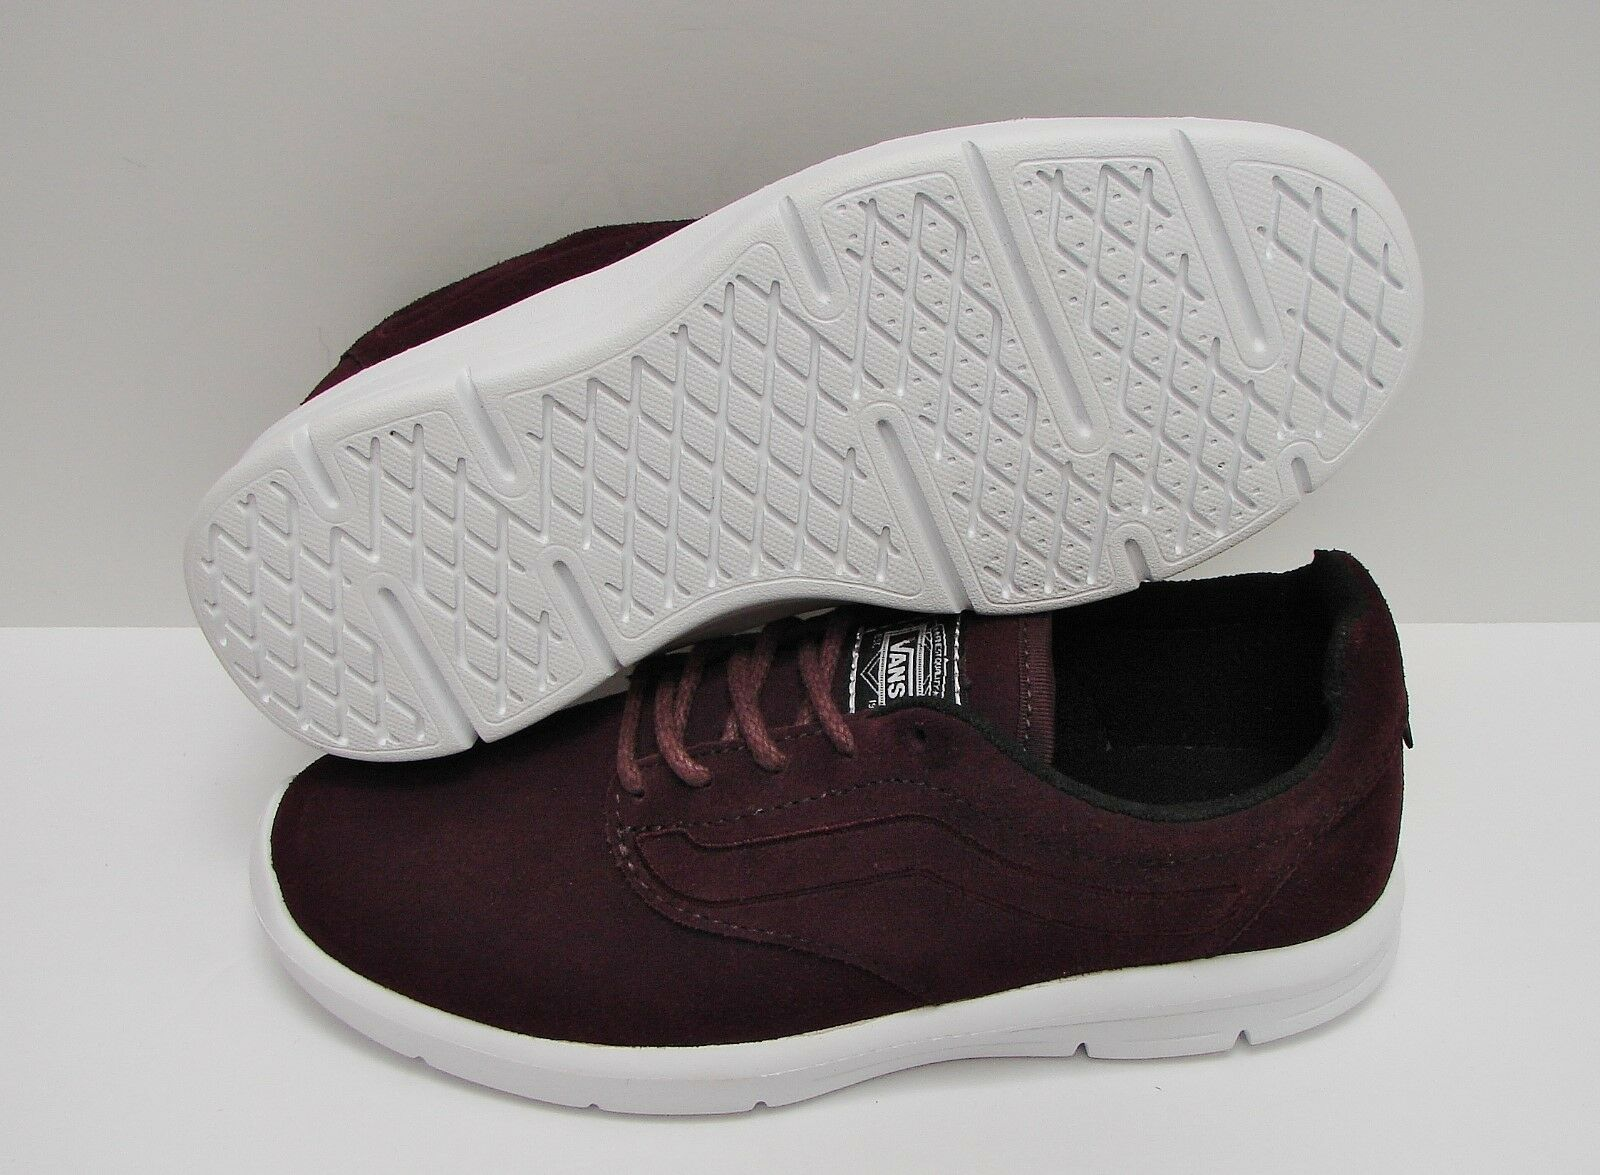 Vans Iso 1.5 Suede Iron Brown True White VN0A2Z5SM45 VN0A2Z5SM45 VN0A2Z5SM45 Women's Size  10 0ba365